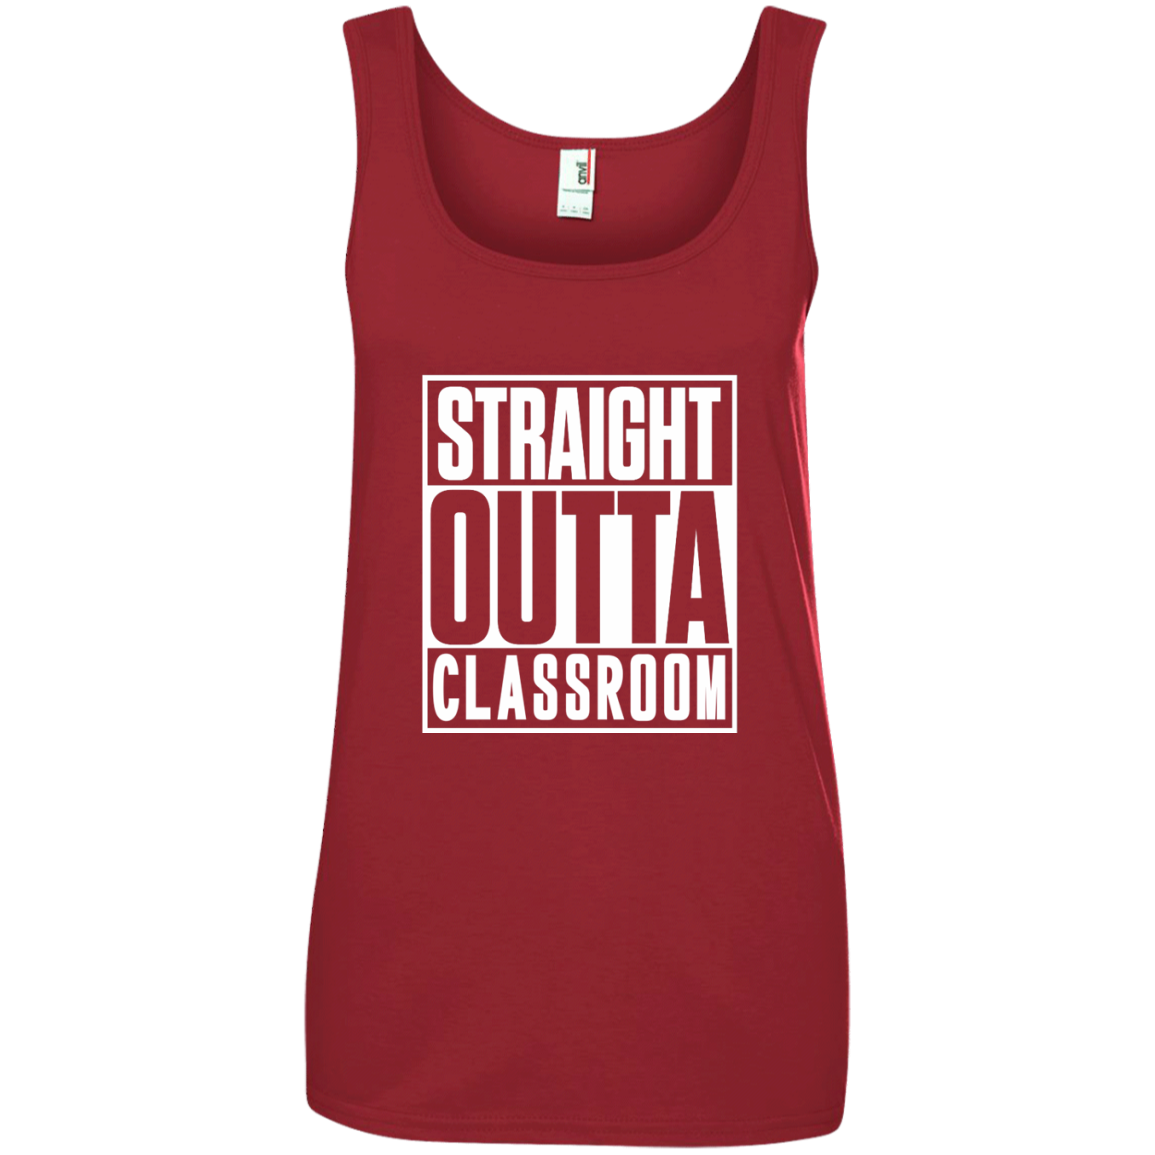 Straight Outta Classroom Ladies' 100% Ringspun Cotton Tank Top - TeachersLoungeShop - 1